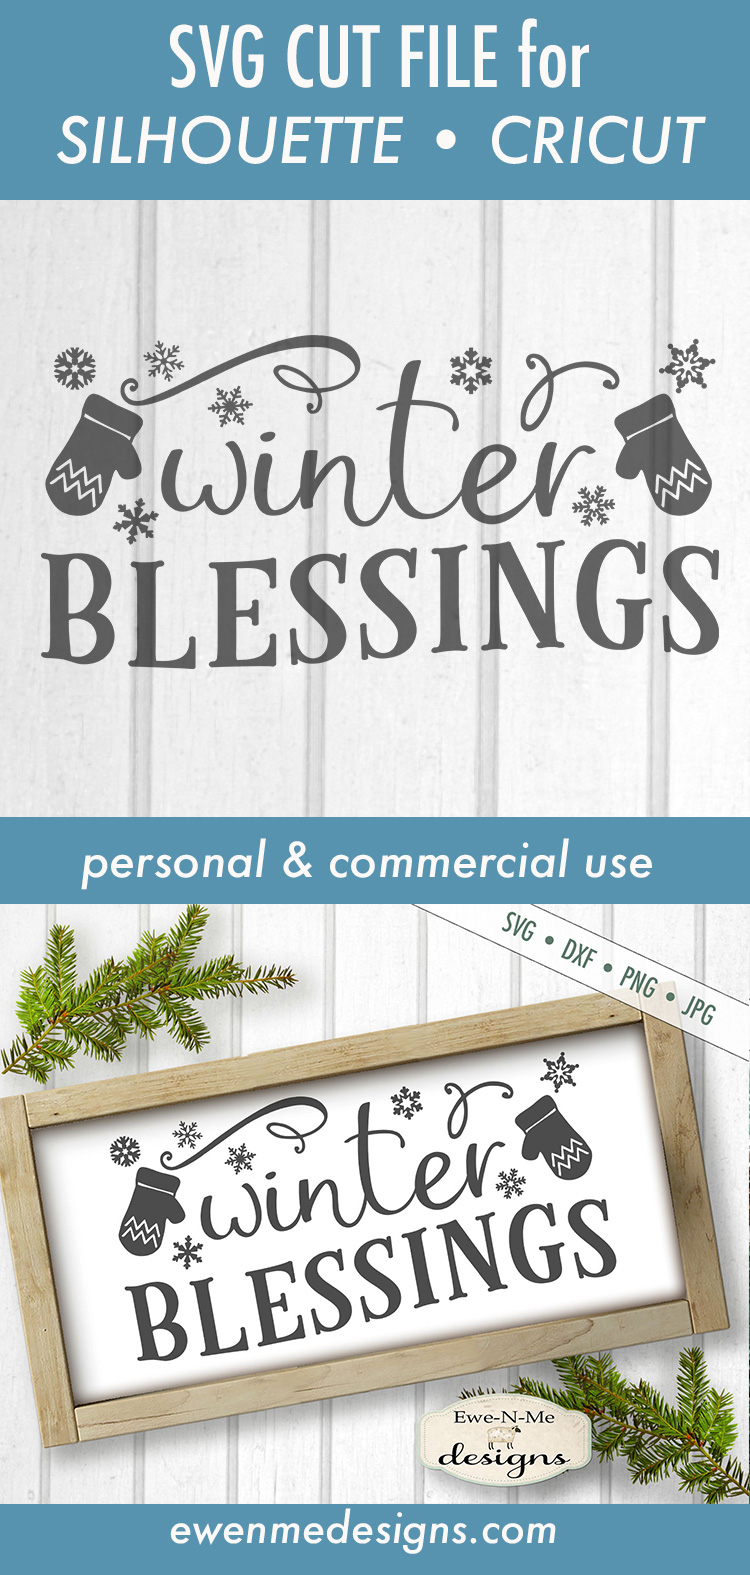 Winter Blessings - Mittens - SVG DXF Files example image 3